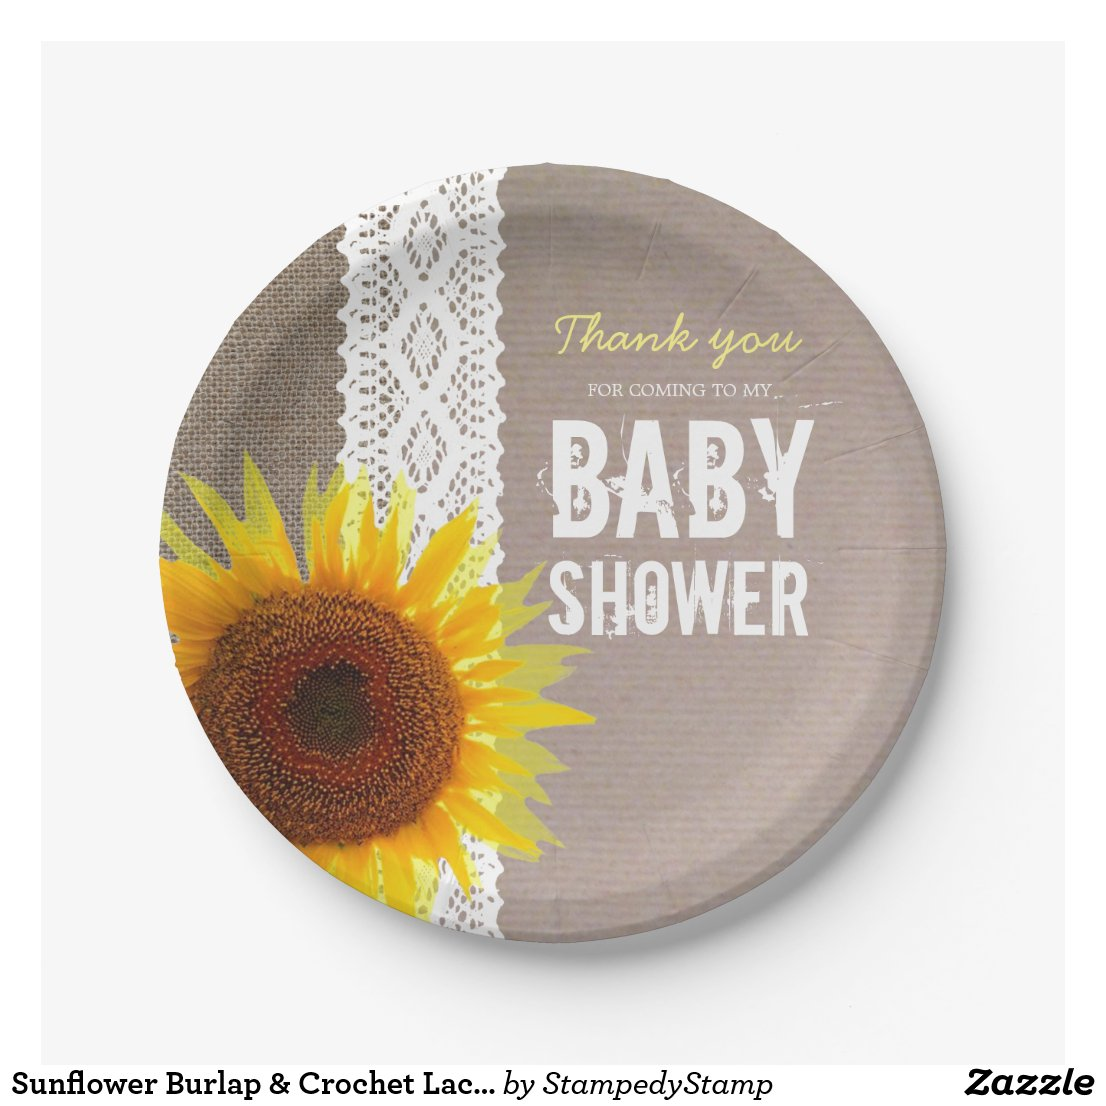 Sunflower Burlap & Crochet Lace Baby Shower